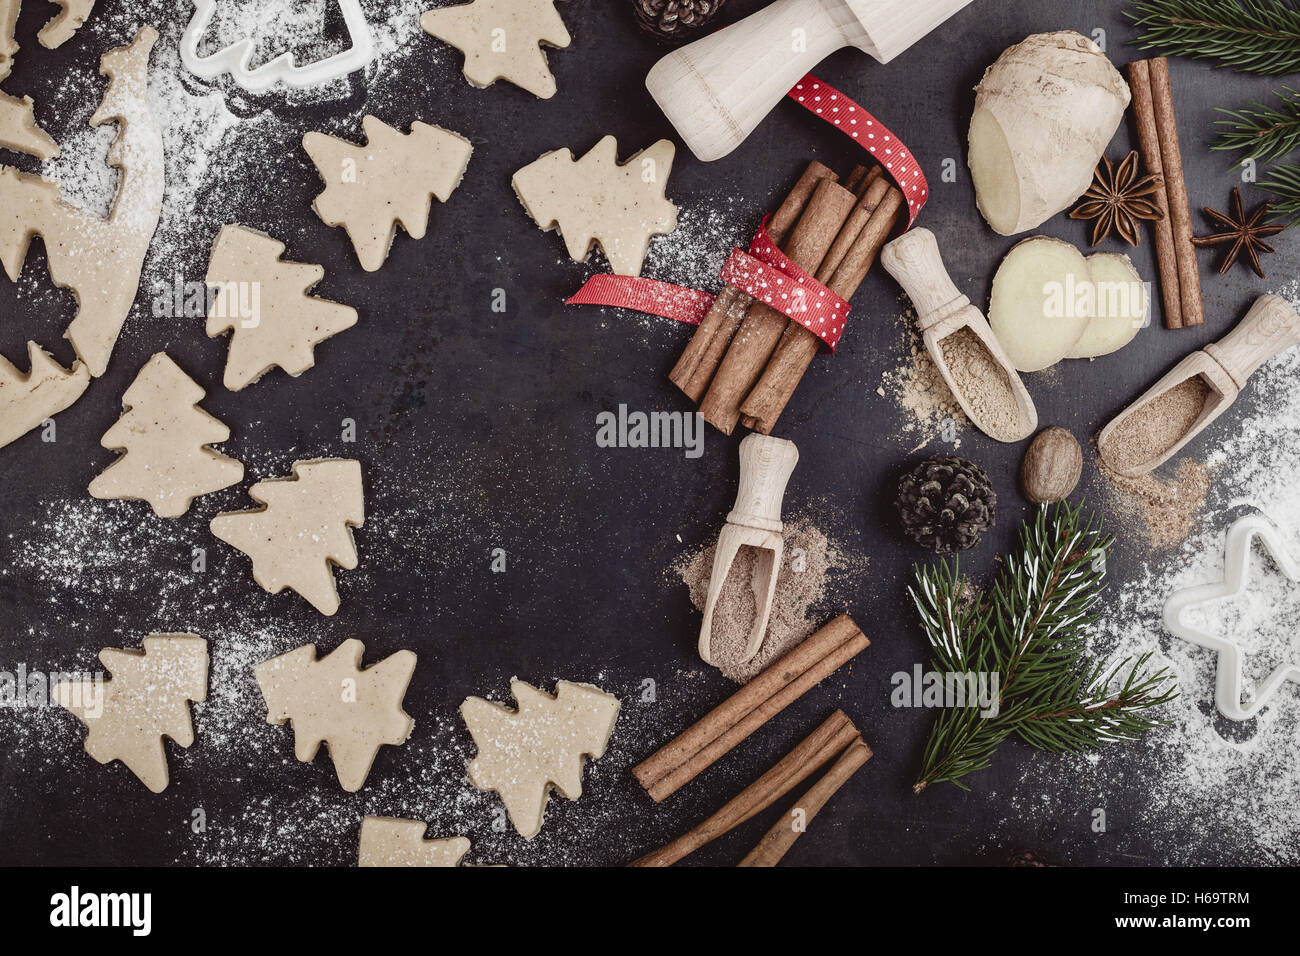 Frame of baking ingredients and tolls for gingerbread dough preparation. Christmas cookies and spices over rustic - Stock Image